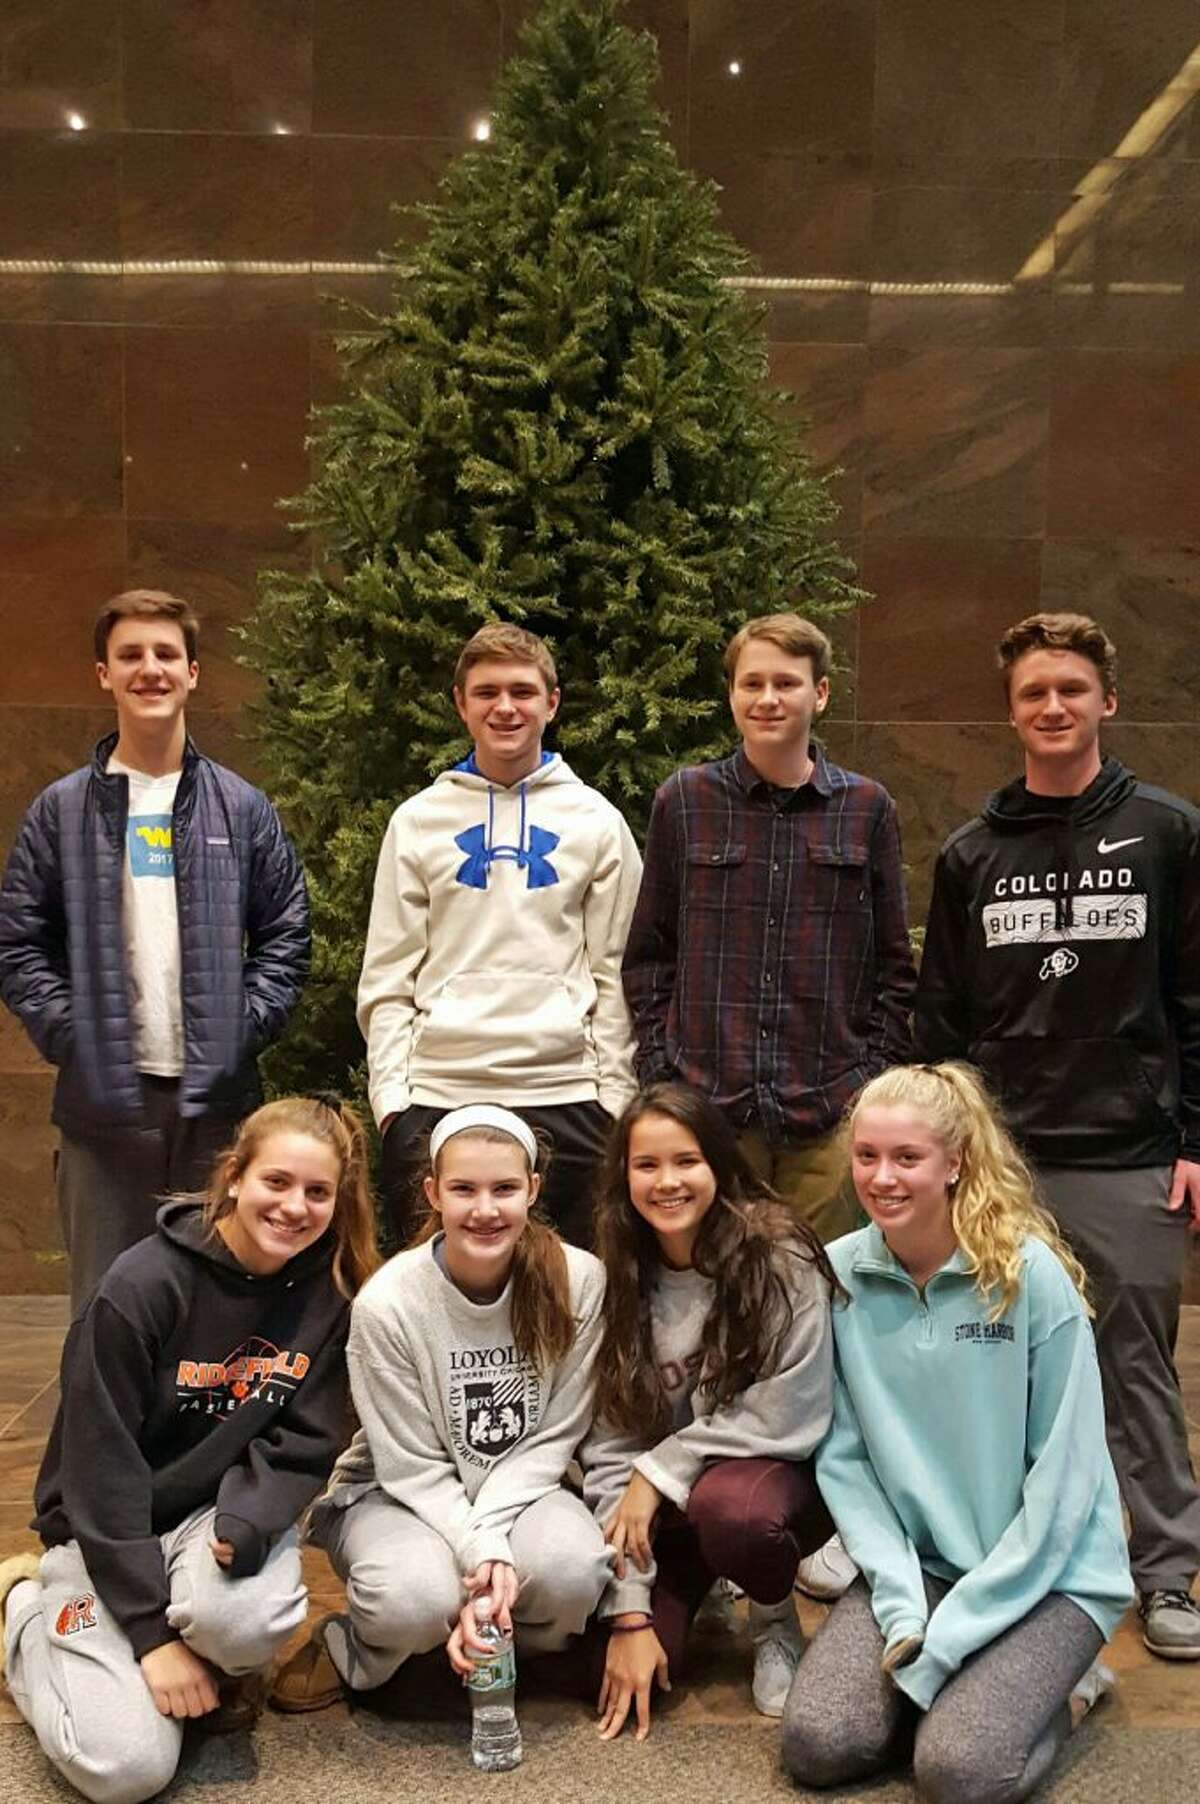 Pictured, in back from left to right are: Full Court Peace members: Finn Atkins, Evan Collins, Sean Maue, and Jason Hartnett. In front, from left to right: Jamie Narcisso, Katie Flynn, Rachel Tomasetti and Kate Garson.